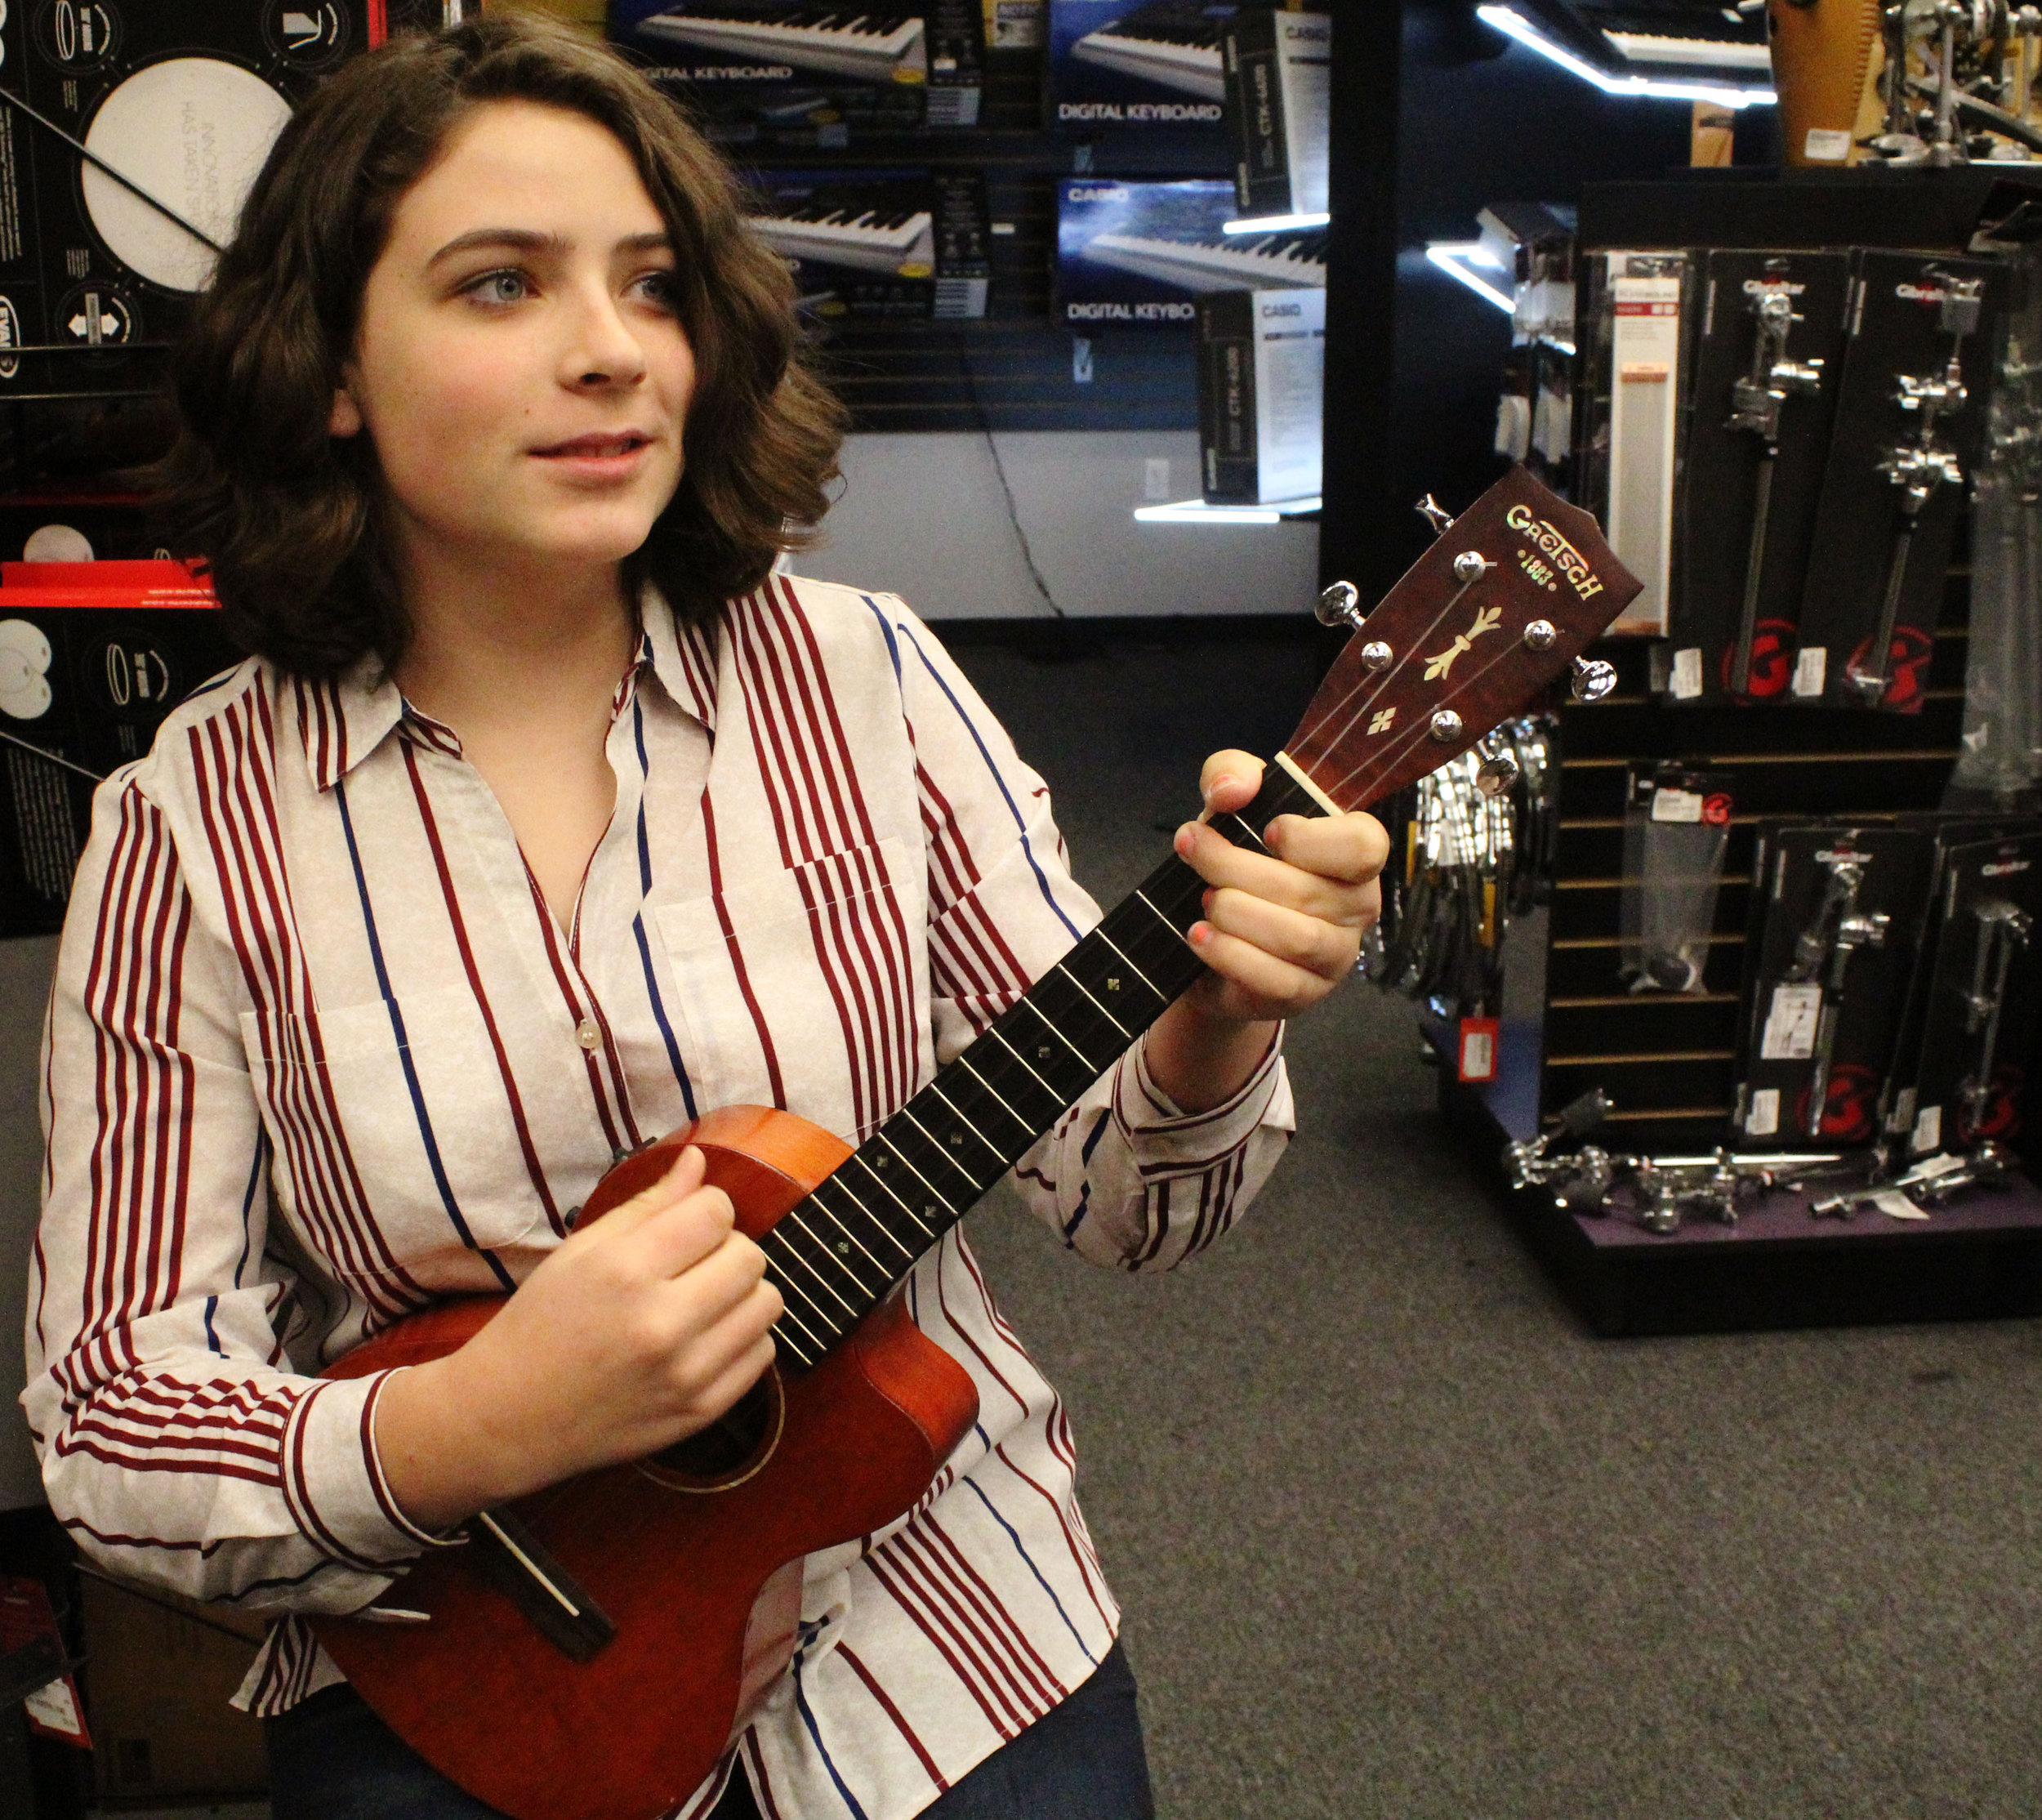 "Olivia Burney, a customer of CoMo Guitar Works, plays with her newly repaired ukulele on Friday, Jan. 19, 2018 at CoMo Guitar Works in Columbia, Mo. Burney says she trusts Brent's work and is happy that her ukulele plays well. ""He put in a new bridge for this and it sounds really awesome. I just think it's really, really, really cool,"" Burney said."